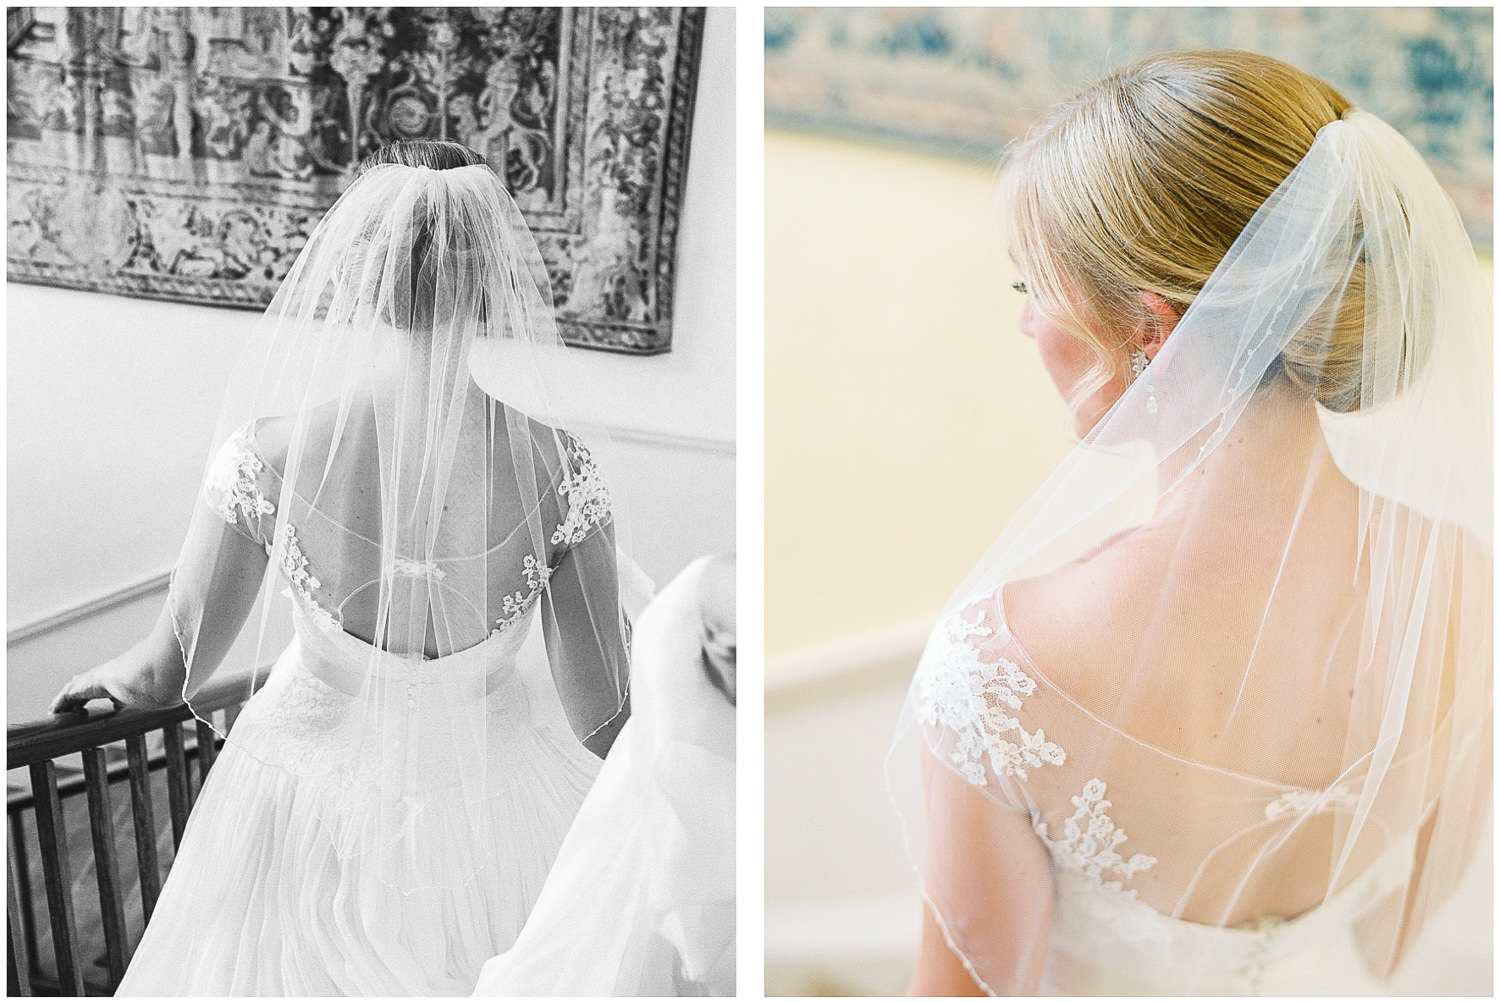 newington house, wedding dress, Naomi Neoh, bride, veil